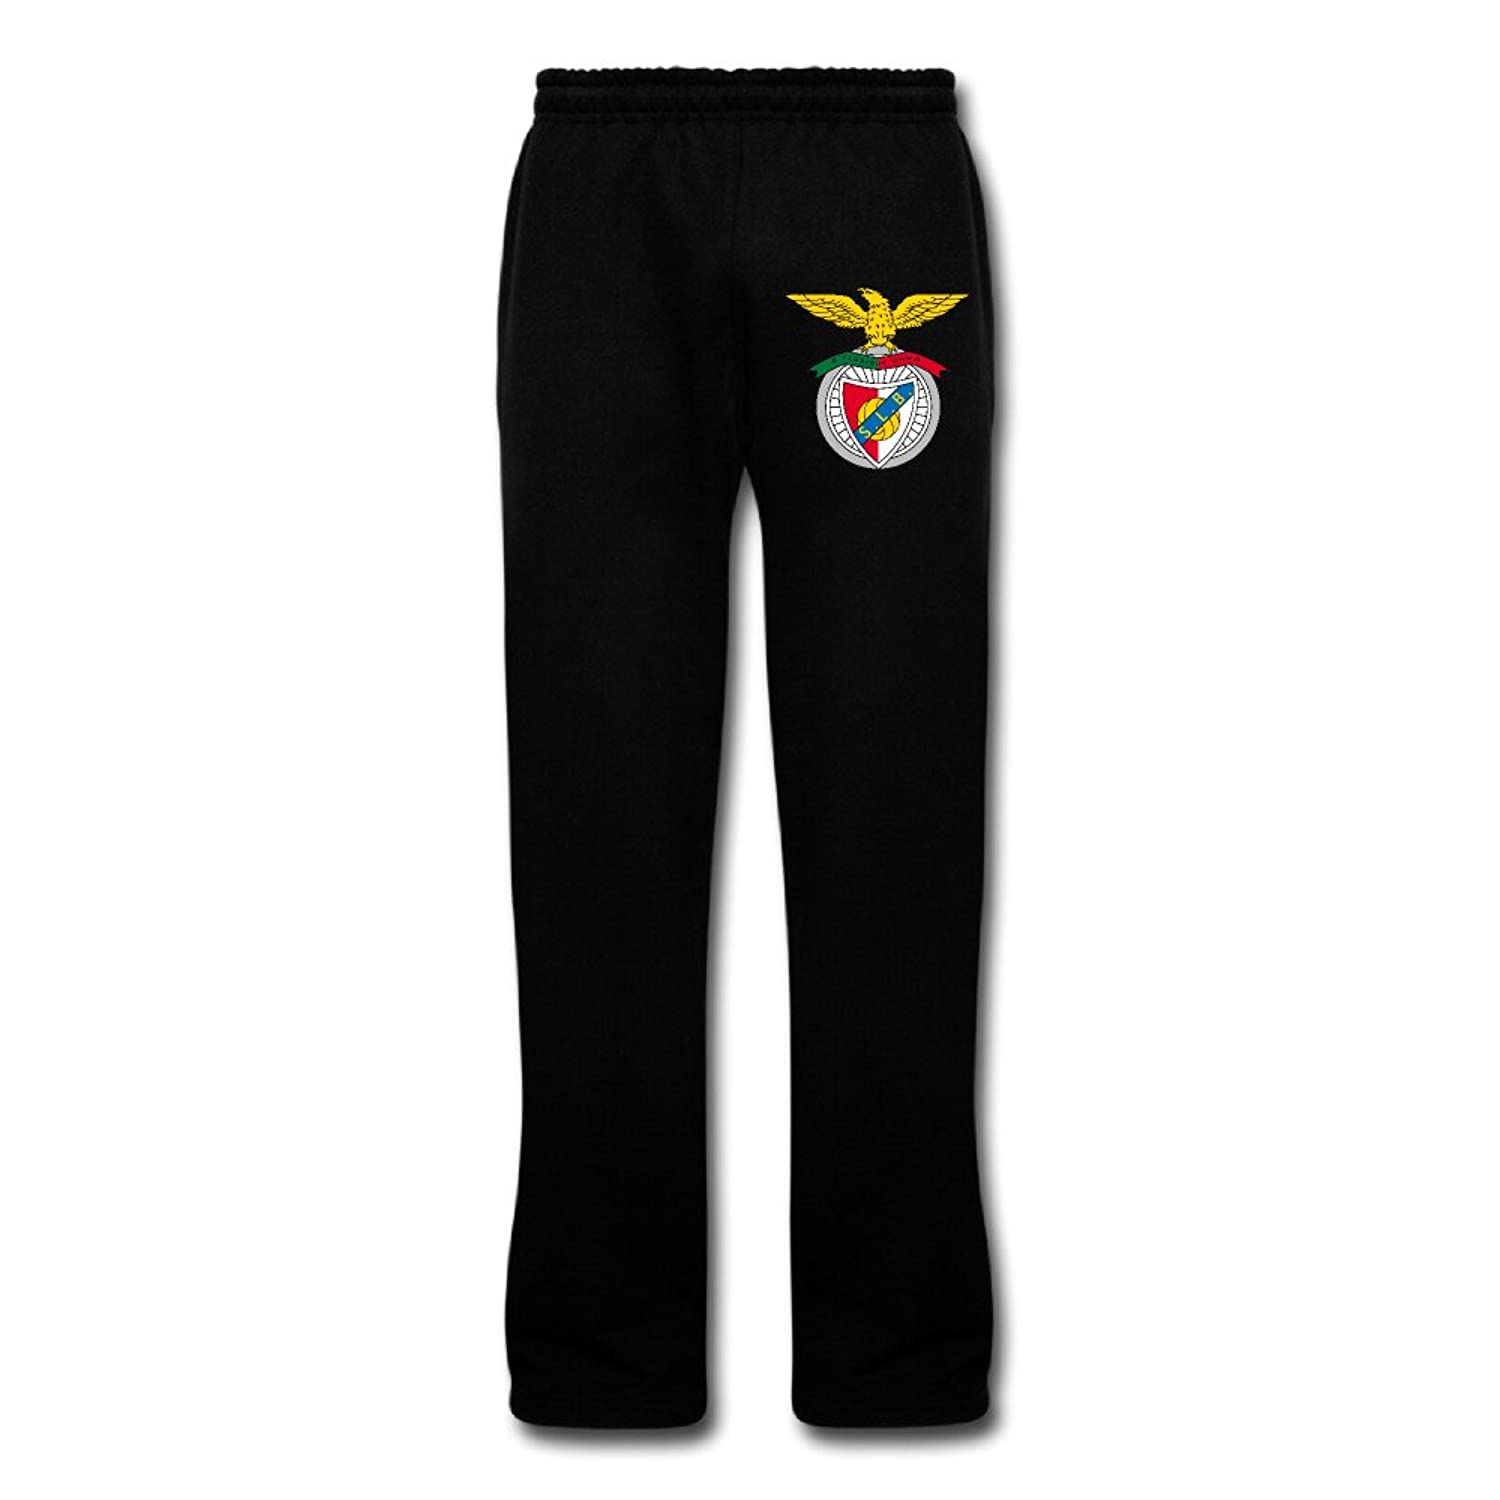 DAMEI Men's Benfica Eagle Football Team Sports Sweatpants Cotton Pants